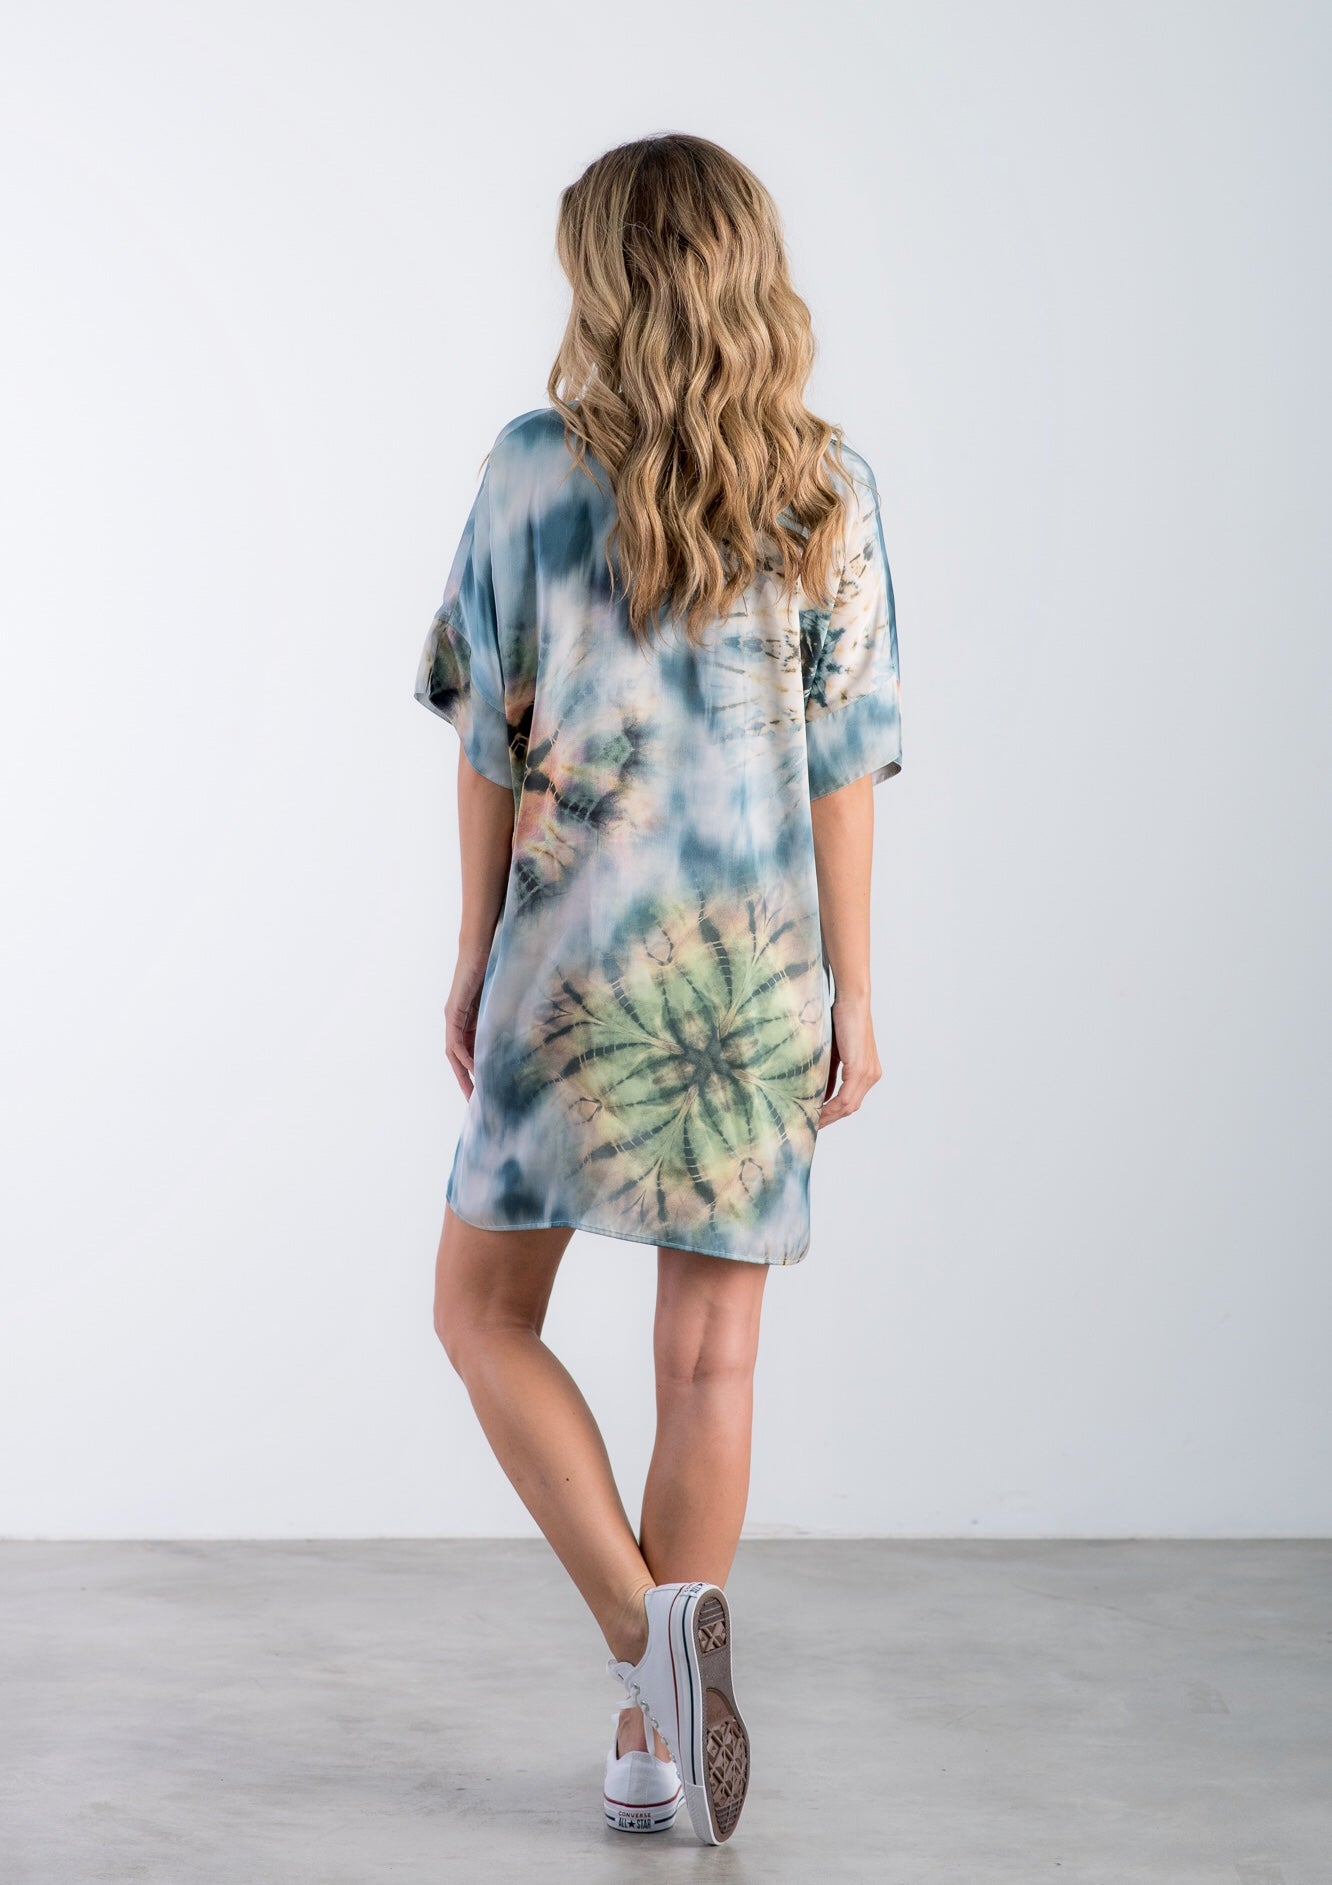 The Dottie - Blue Tie Dye Print